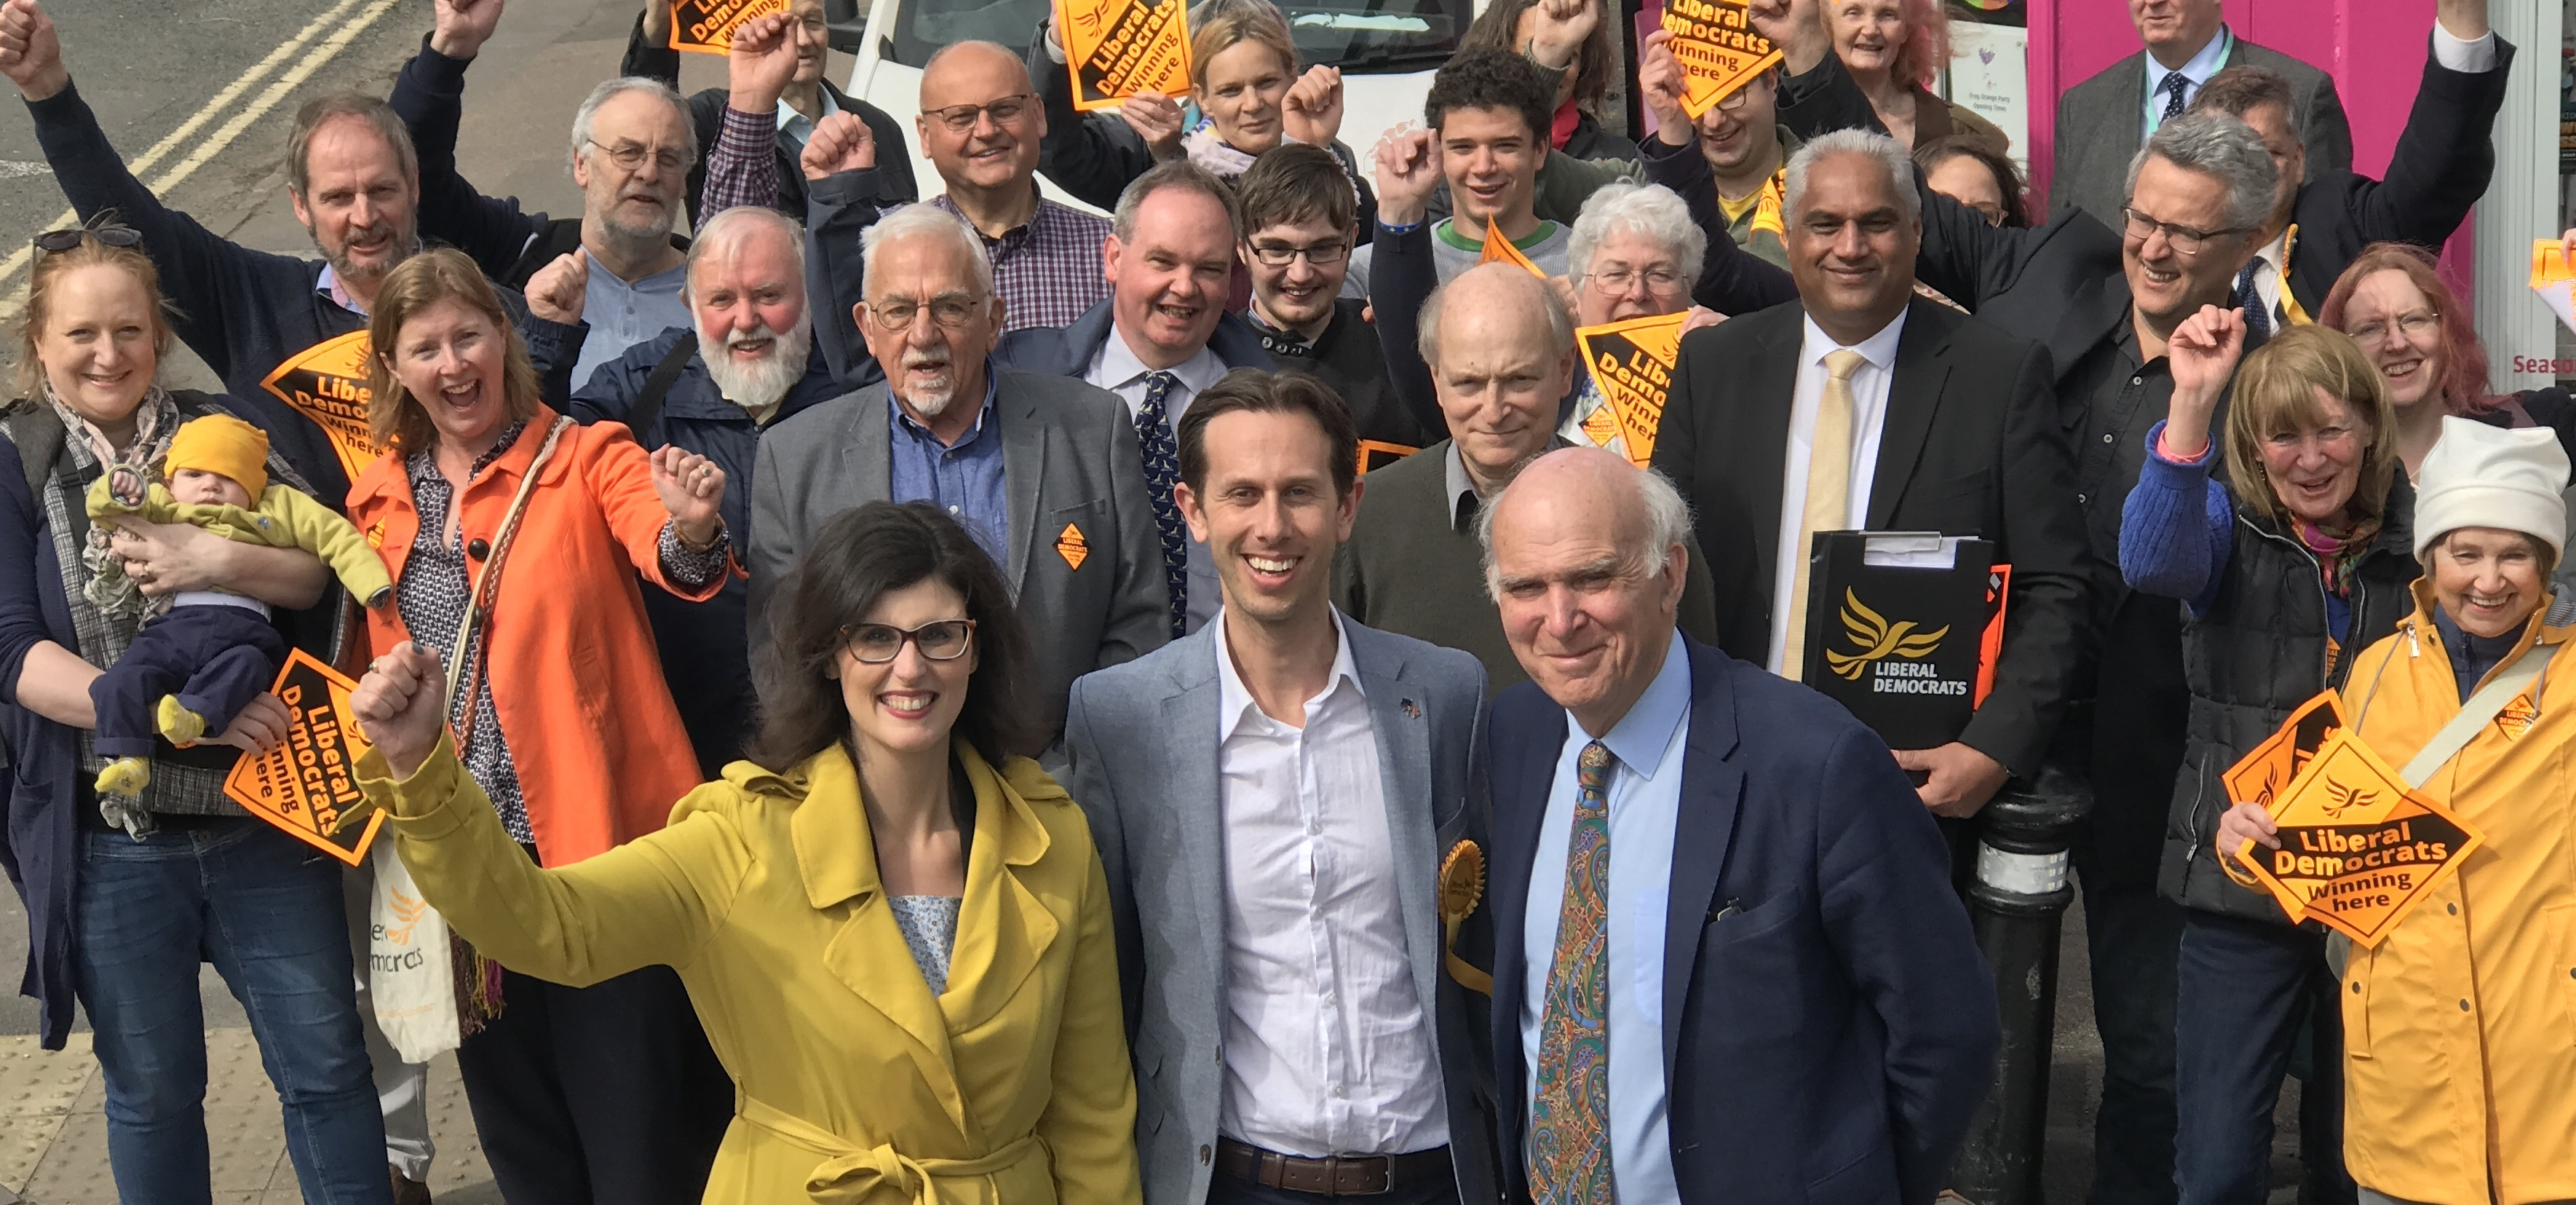 Liberal Democrats Double Their Seats Across Oxfordshire